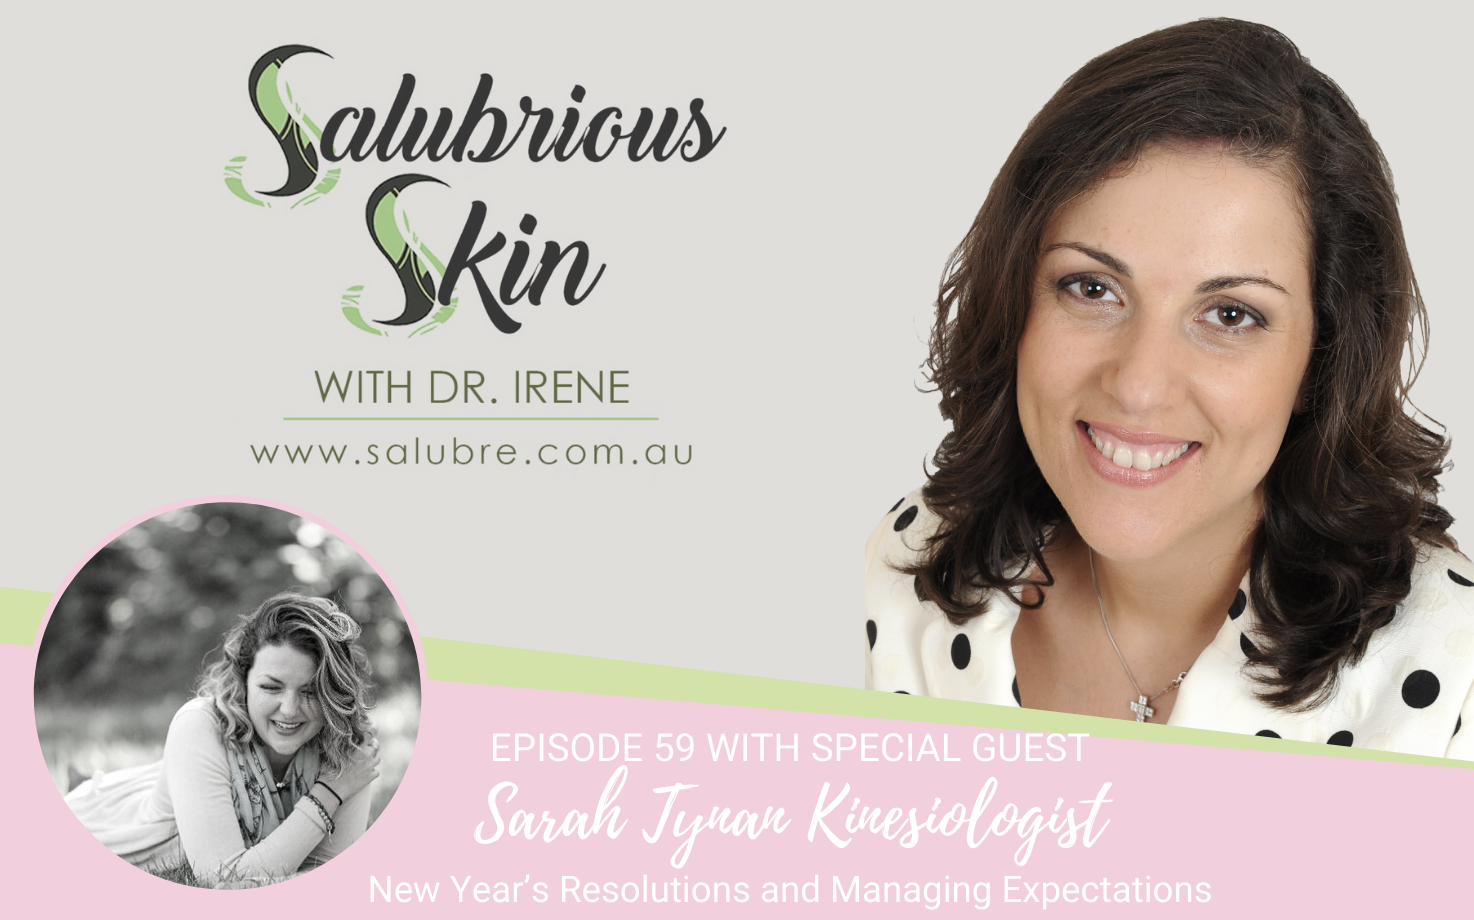 Podcast 59: New Year's Resolutions and Managing Expectations - Interview with Sarah Tynan